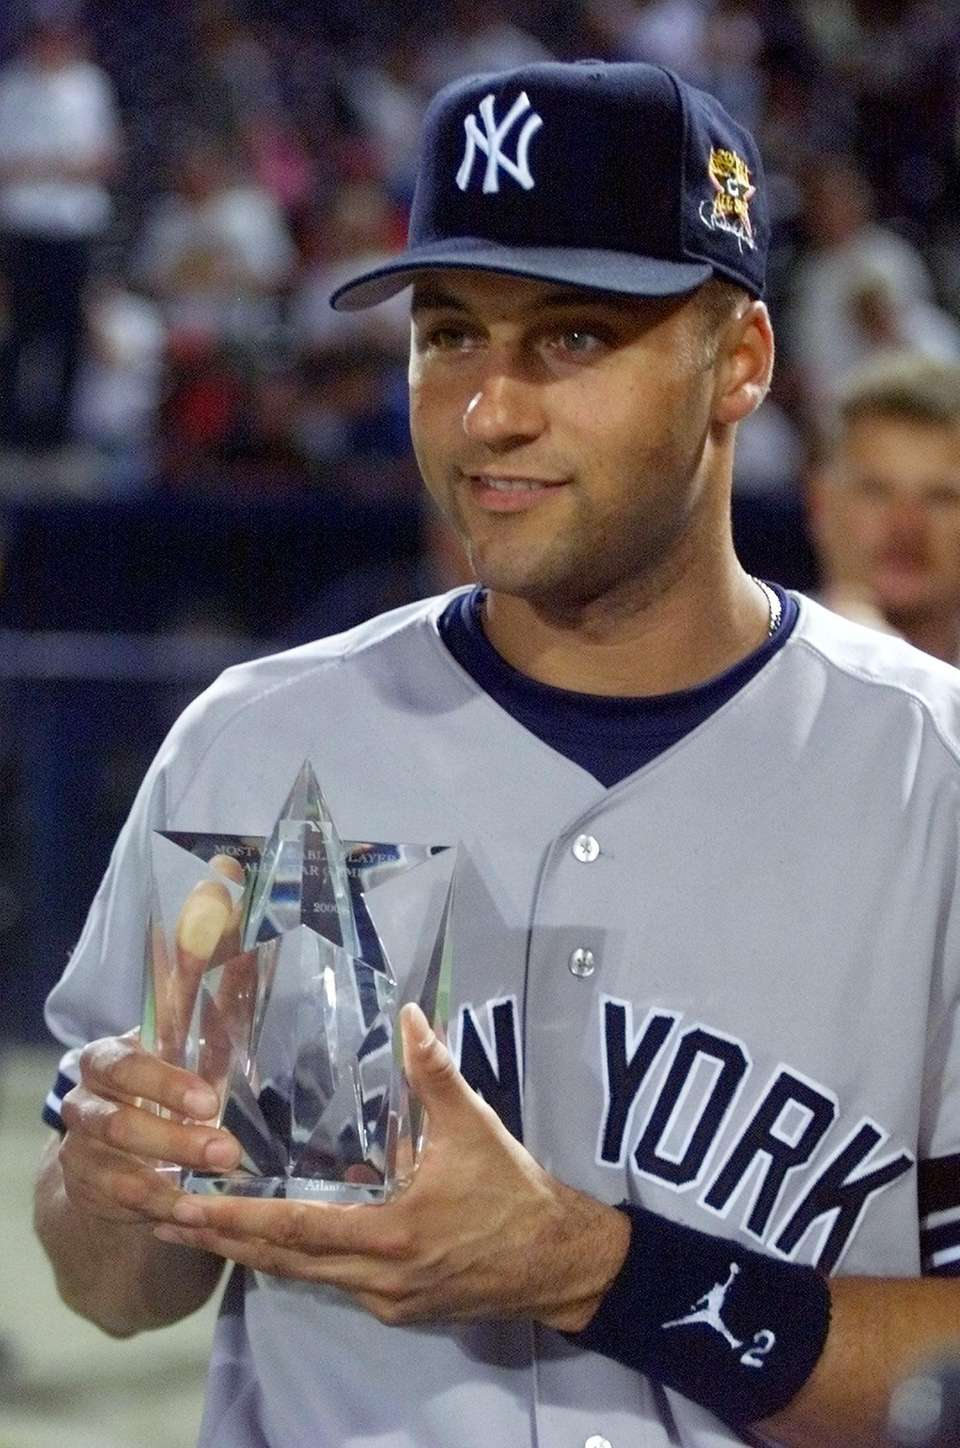 In his first All-Star Game start, Jeter doubled